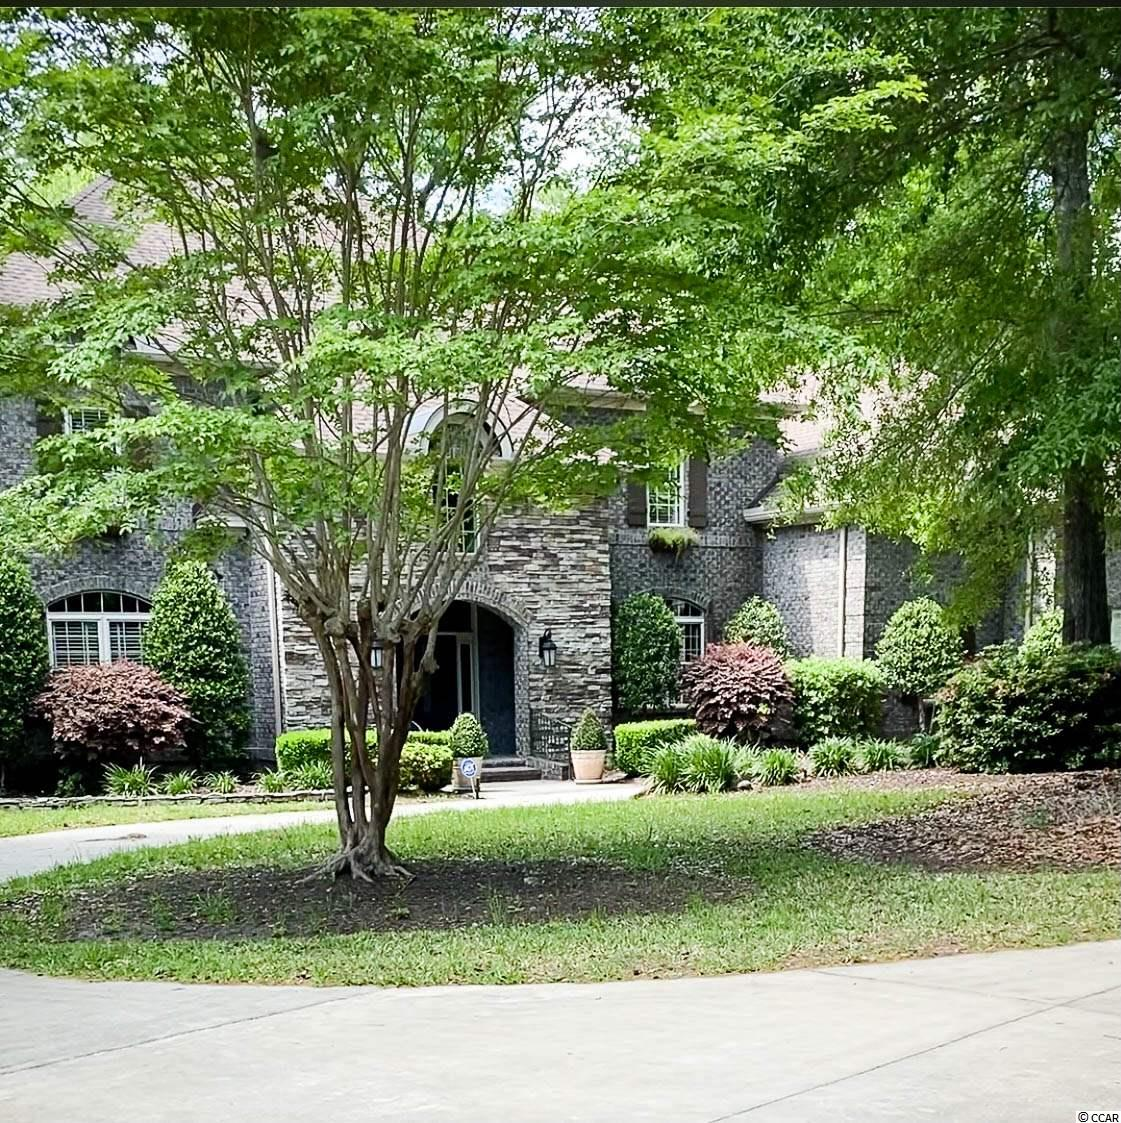 This stunning custom built home sits on 1.43 acers with a wooded view that is protected from any future development. Offering 5 bedroom, 3 full bathrooms and 2 half baths plus a bonus room. Bonus room has  access to a full size bathroom, a wet bar, sink and mini fridge PLUS a private entrance. Perfect for a guest suite or could even be used as a 6th bedroom. This home has countless custom features including built in cabinetry, a wet bar located in the formal dining room, cherry wood flooring and a gourmet kitchen with an island, walk in pantry, granite countertops and a spacious dining area that is perfect for entertaining. The spacious living room has built in cabinets, a gas fireplace and leads to the screened in porch with relaxing views of the back yard.  Master bedroom is conveniently located on the first floor, has a walk in closet with built in shelving, double tray ceilings and plenty of windows.  Master bathroom does not disappoint, here you will find his and her vanities, a large walk-in tiled shower, jacuzzi tub, and a closet. Upstairs you have 4 large bedrooms and two full bathrooms. Spacious 3 car garage and large circular driveway allows plenty of room for a boat.  Creek Ridge Plantation is close to shopping, dining and entertainment, including Garden City Beach, Huntington State Park, Marsh Walk and so much more. Do not miss out on this exquisite home located in beautiful Murrells Inlet.